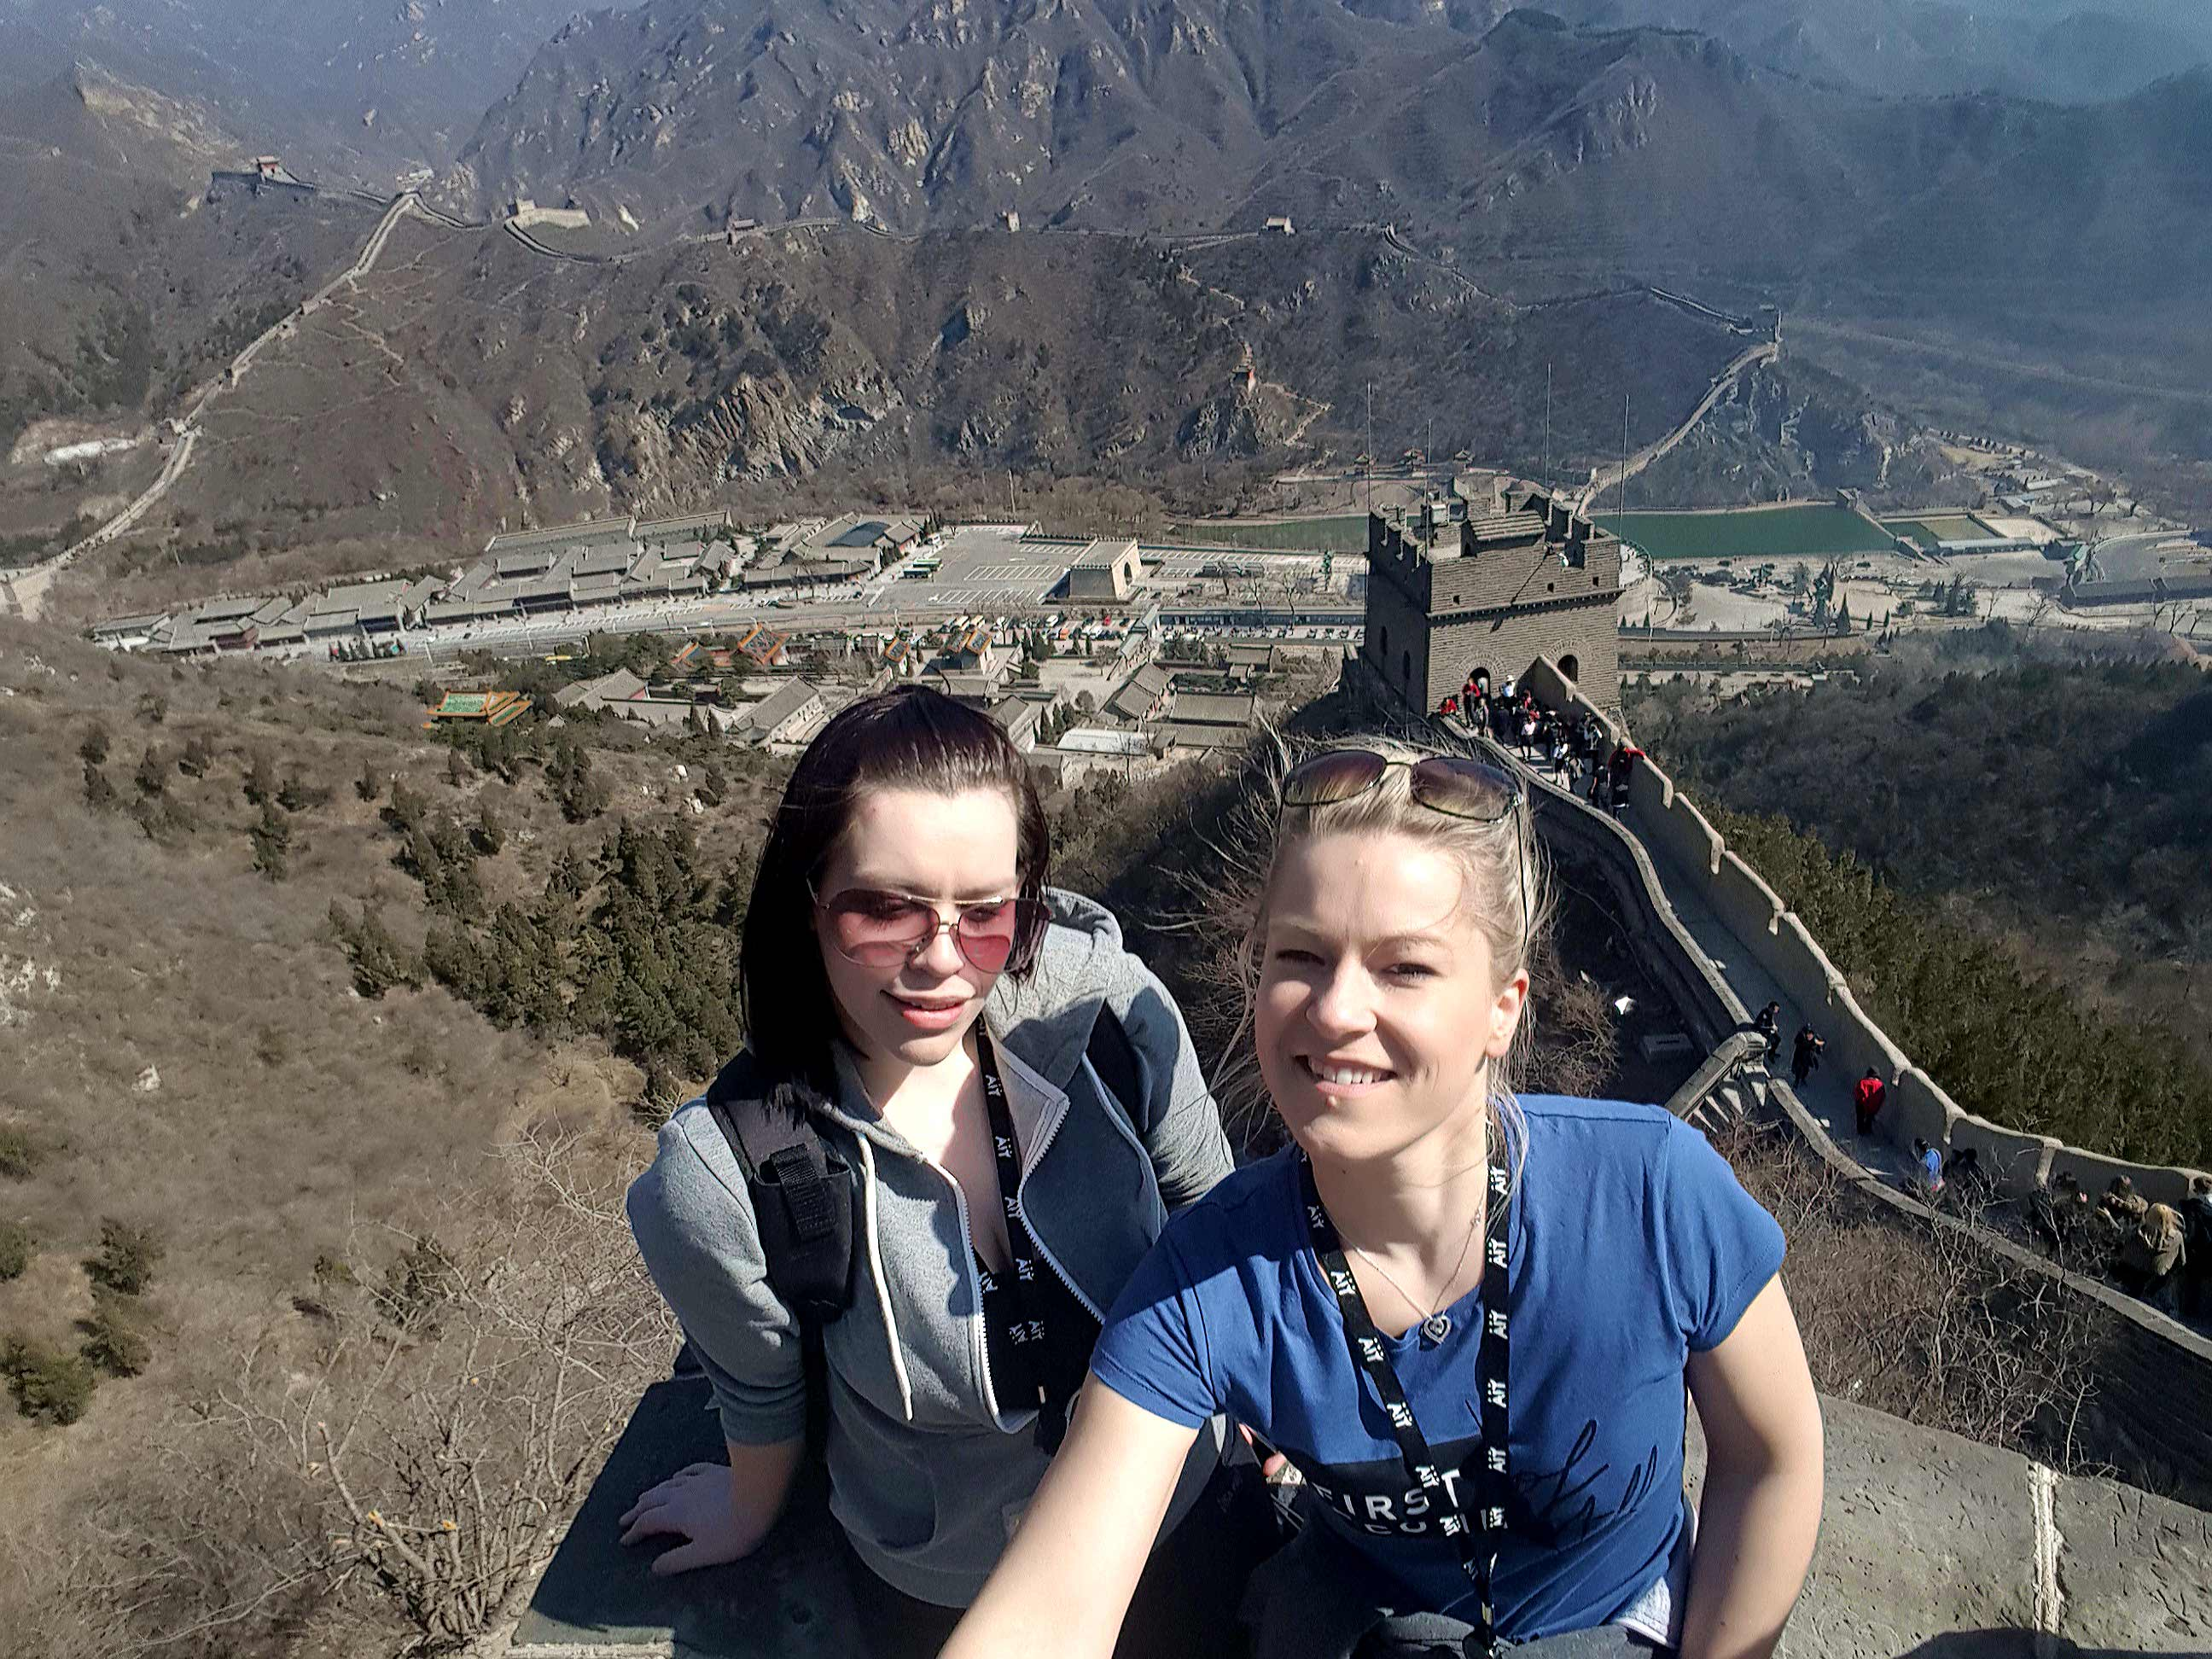 Hospitality students on the Great Wall of China